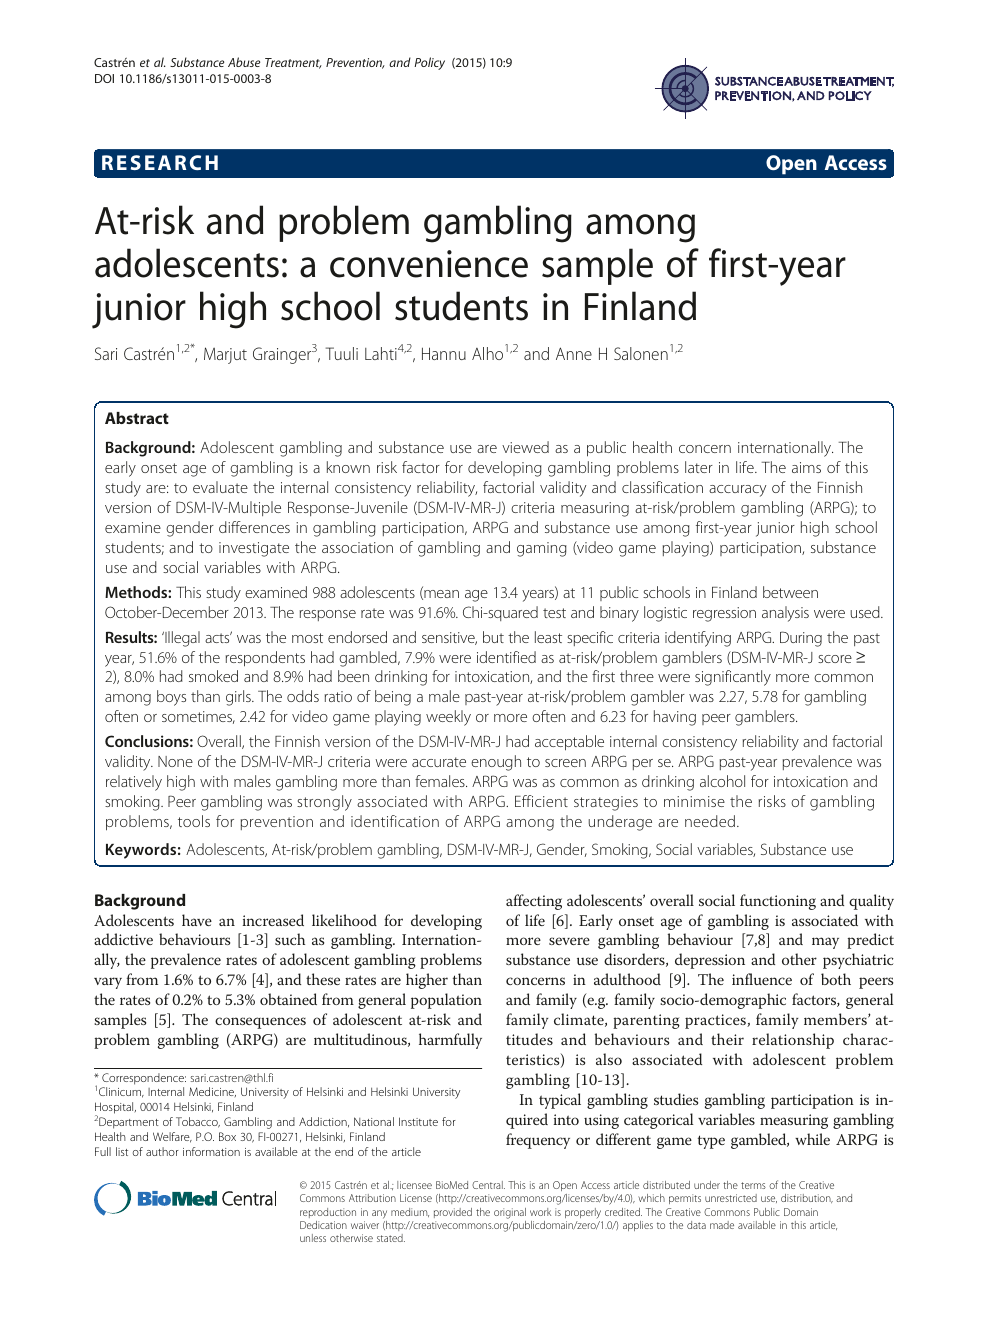 gambling addiction research papers